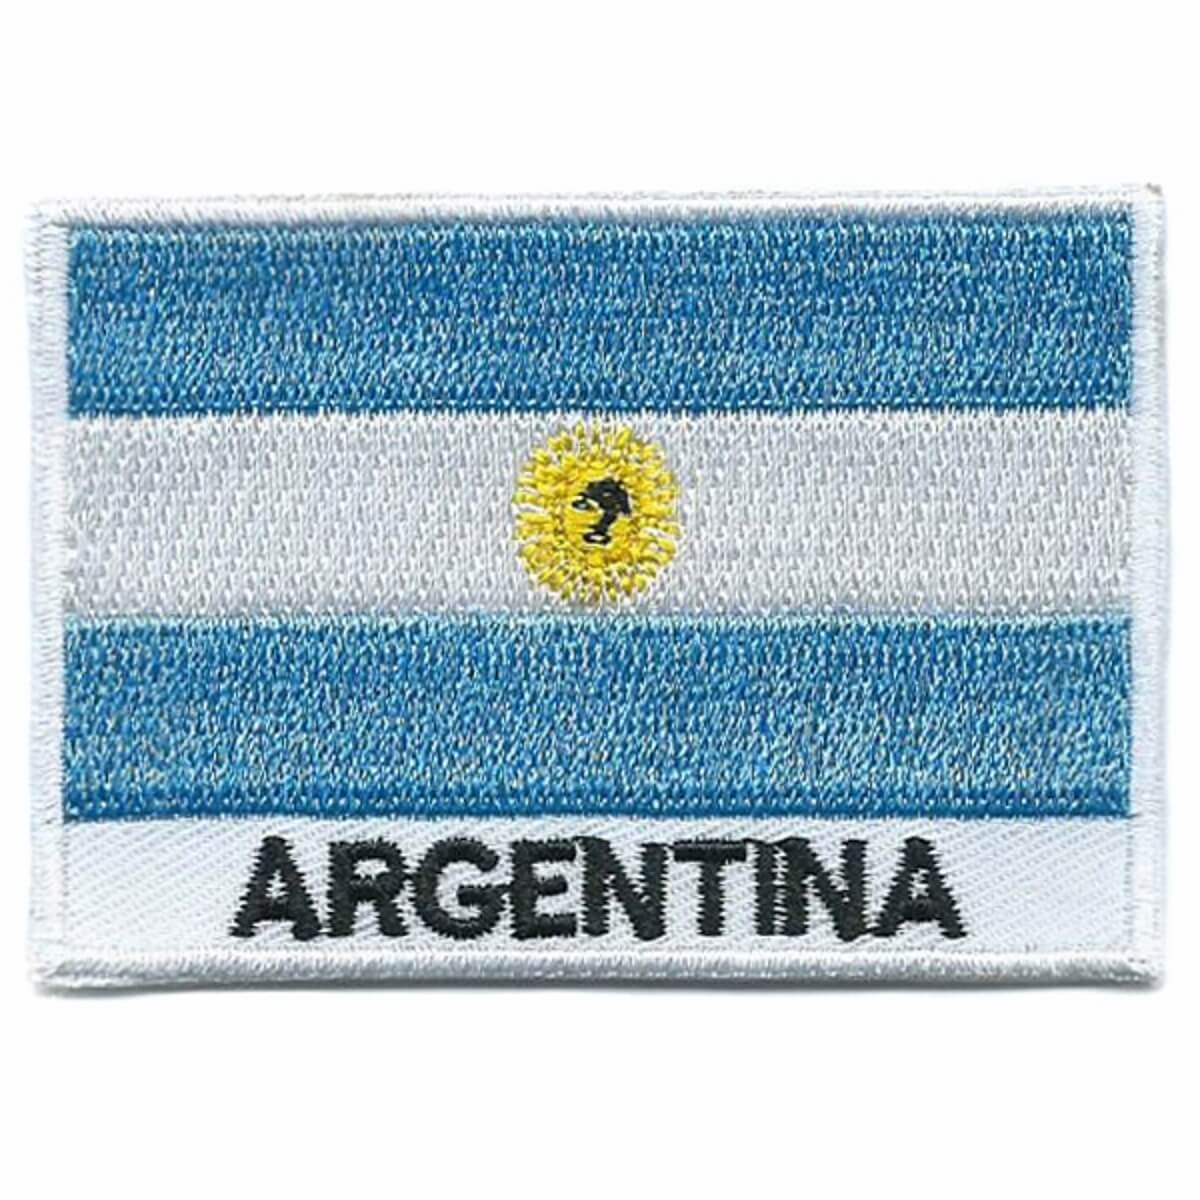 Argentina-Embroidered-Patches